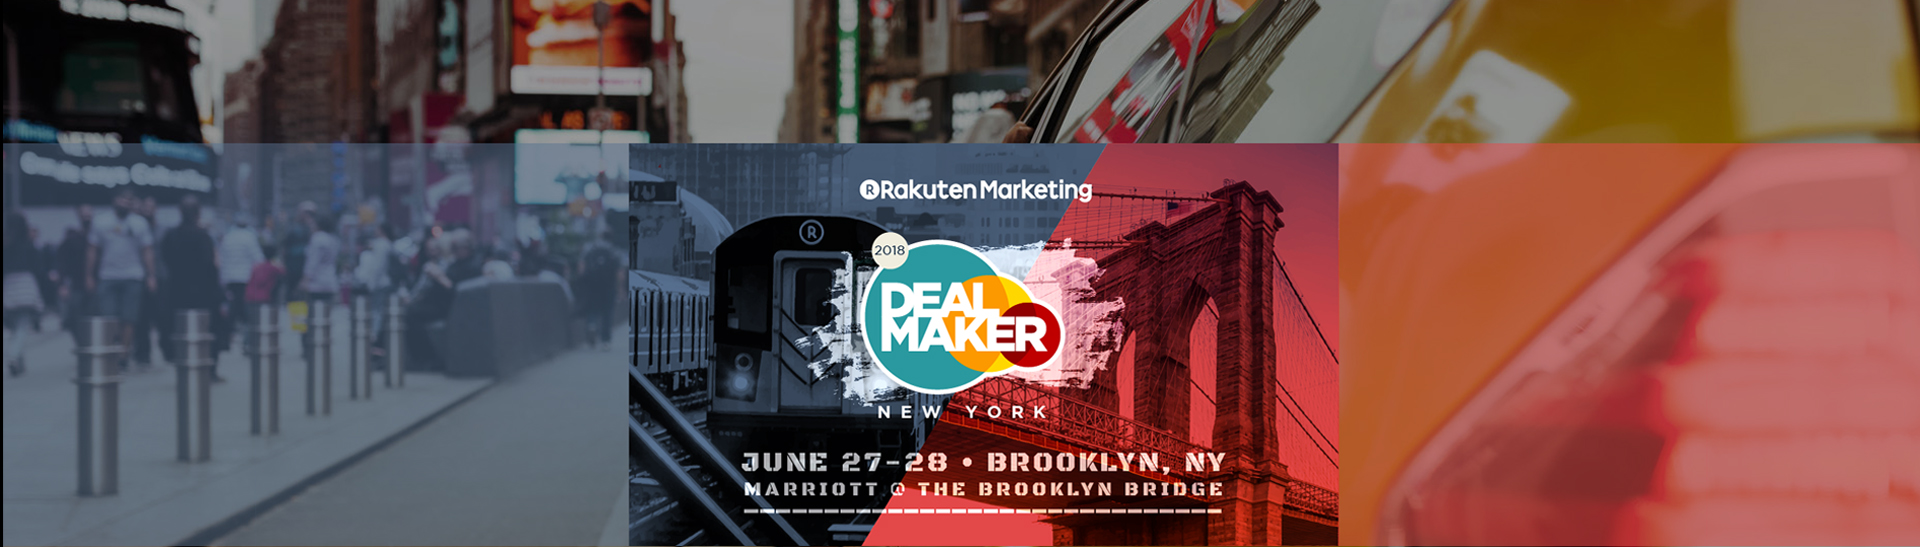 Rakuten Marketing DealMaker New York 2018